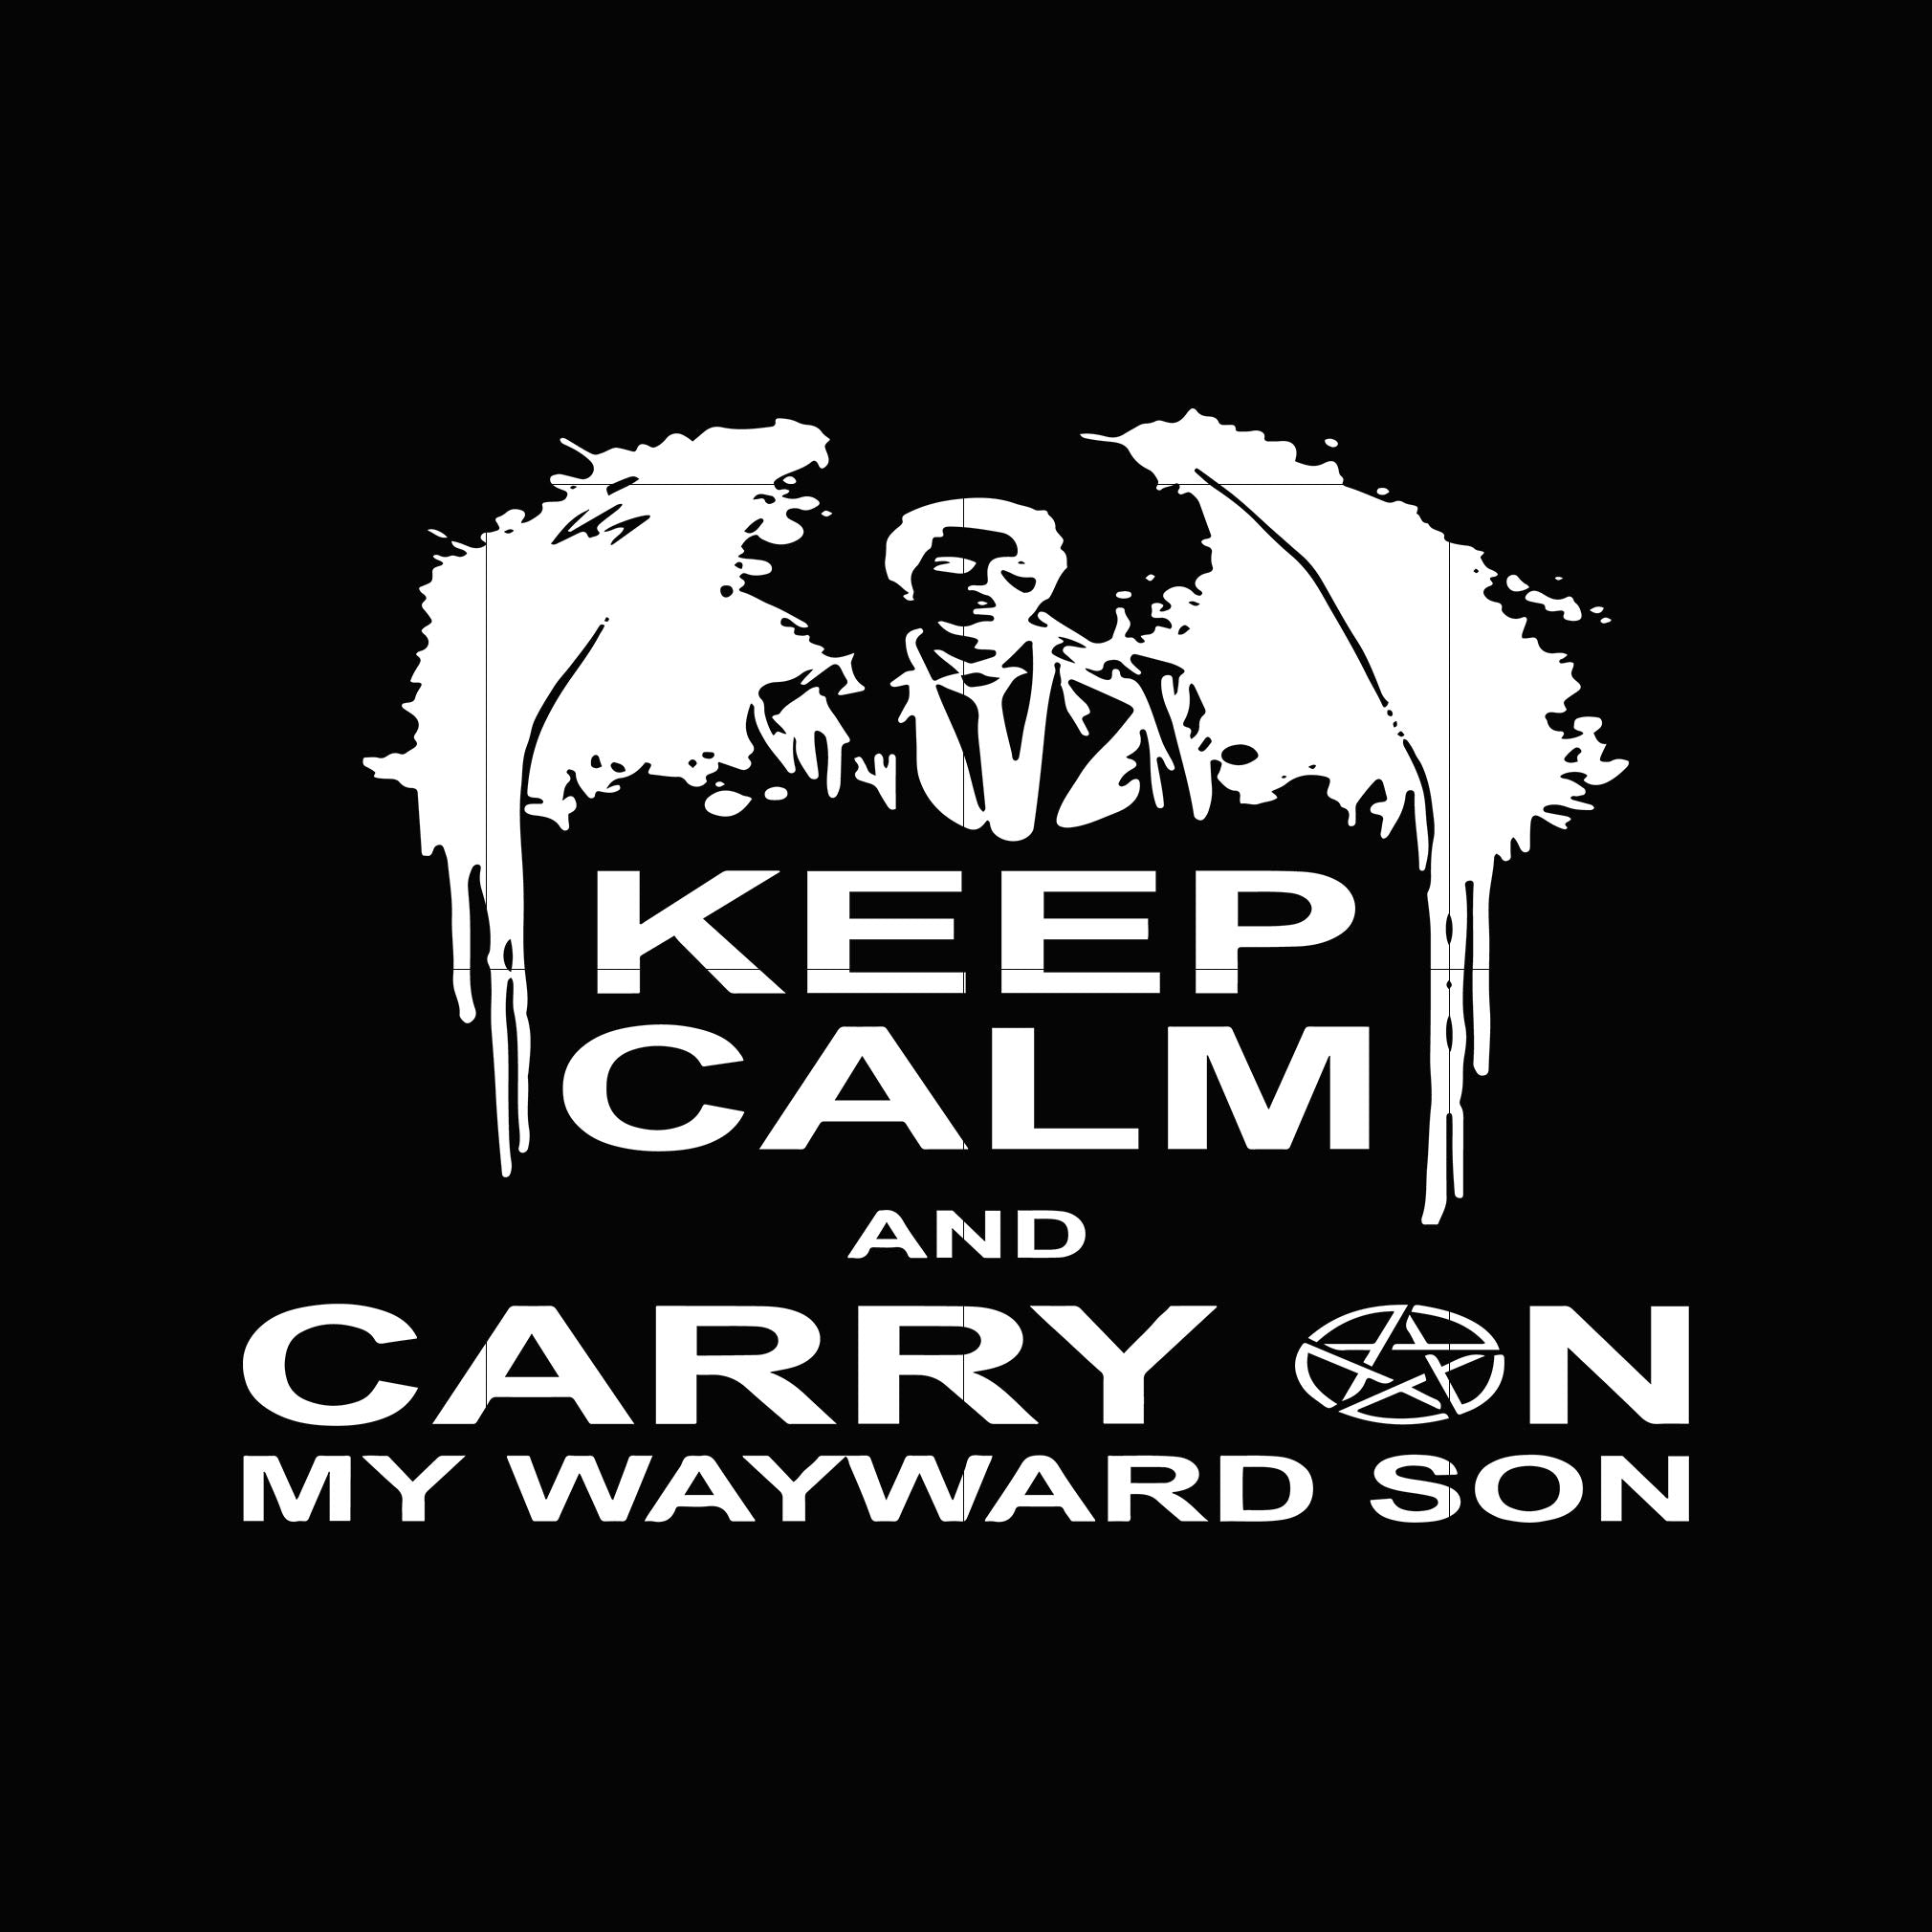 Keep calm and carry on my wayward son svg ,dxf,eps,png digital file